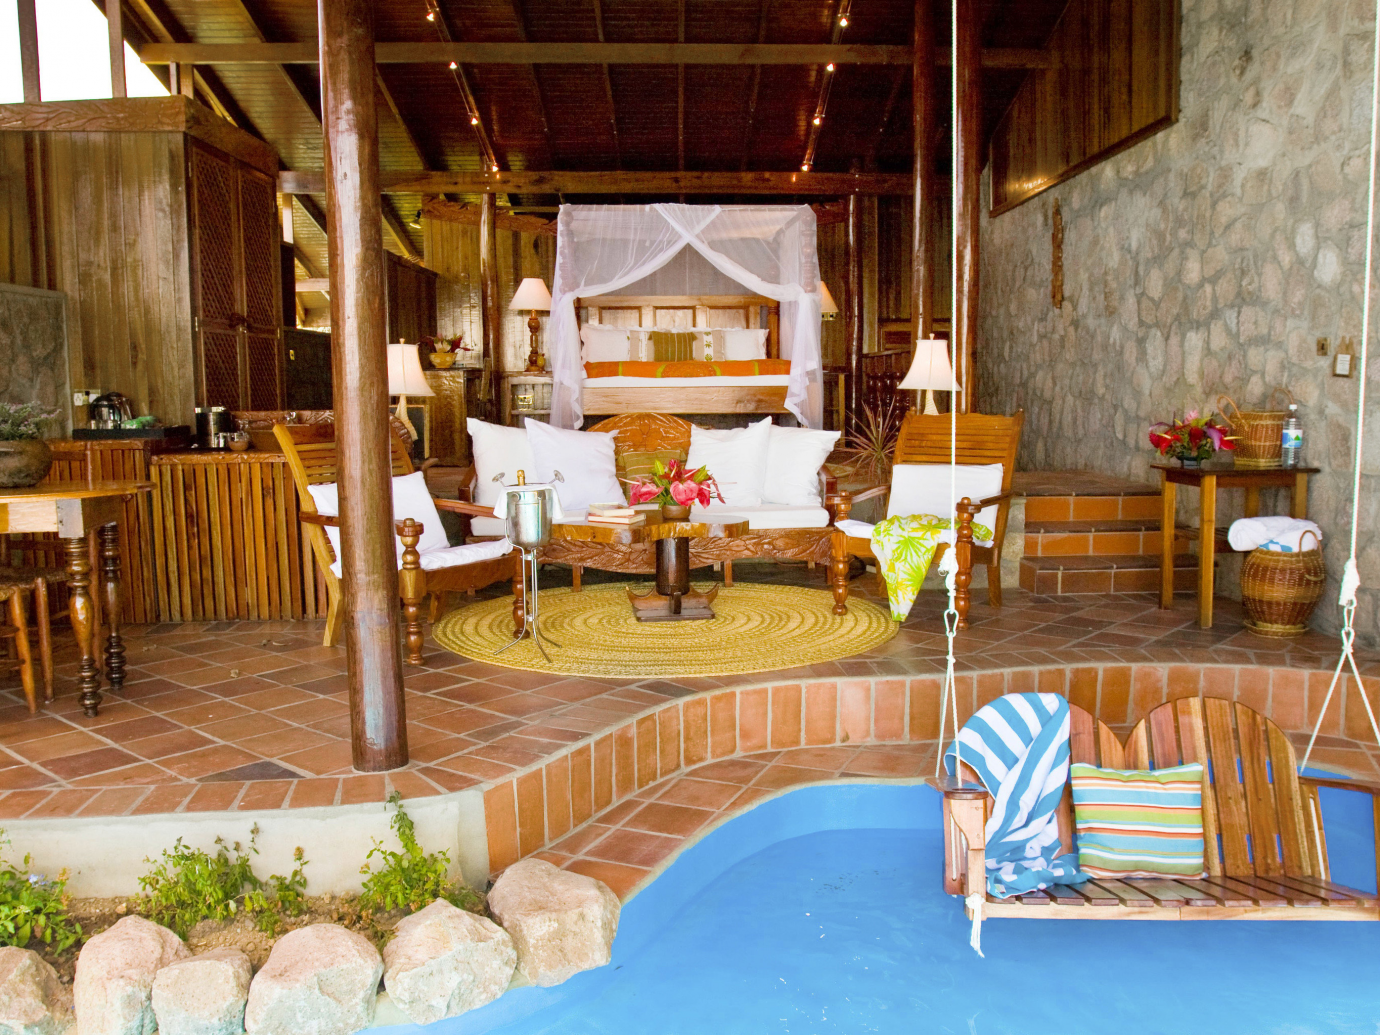 Open air room with swinging bench and water underneath at Ladera Resort